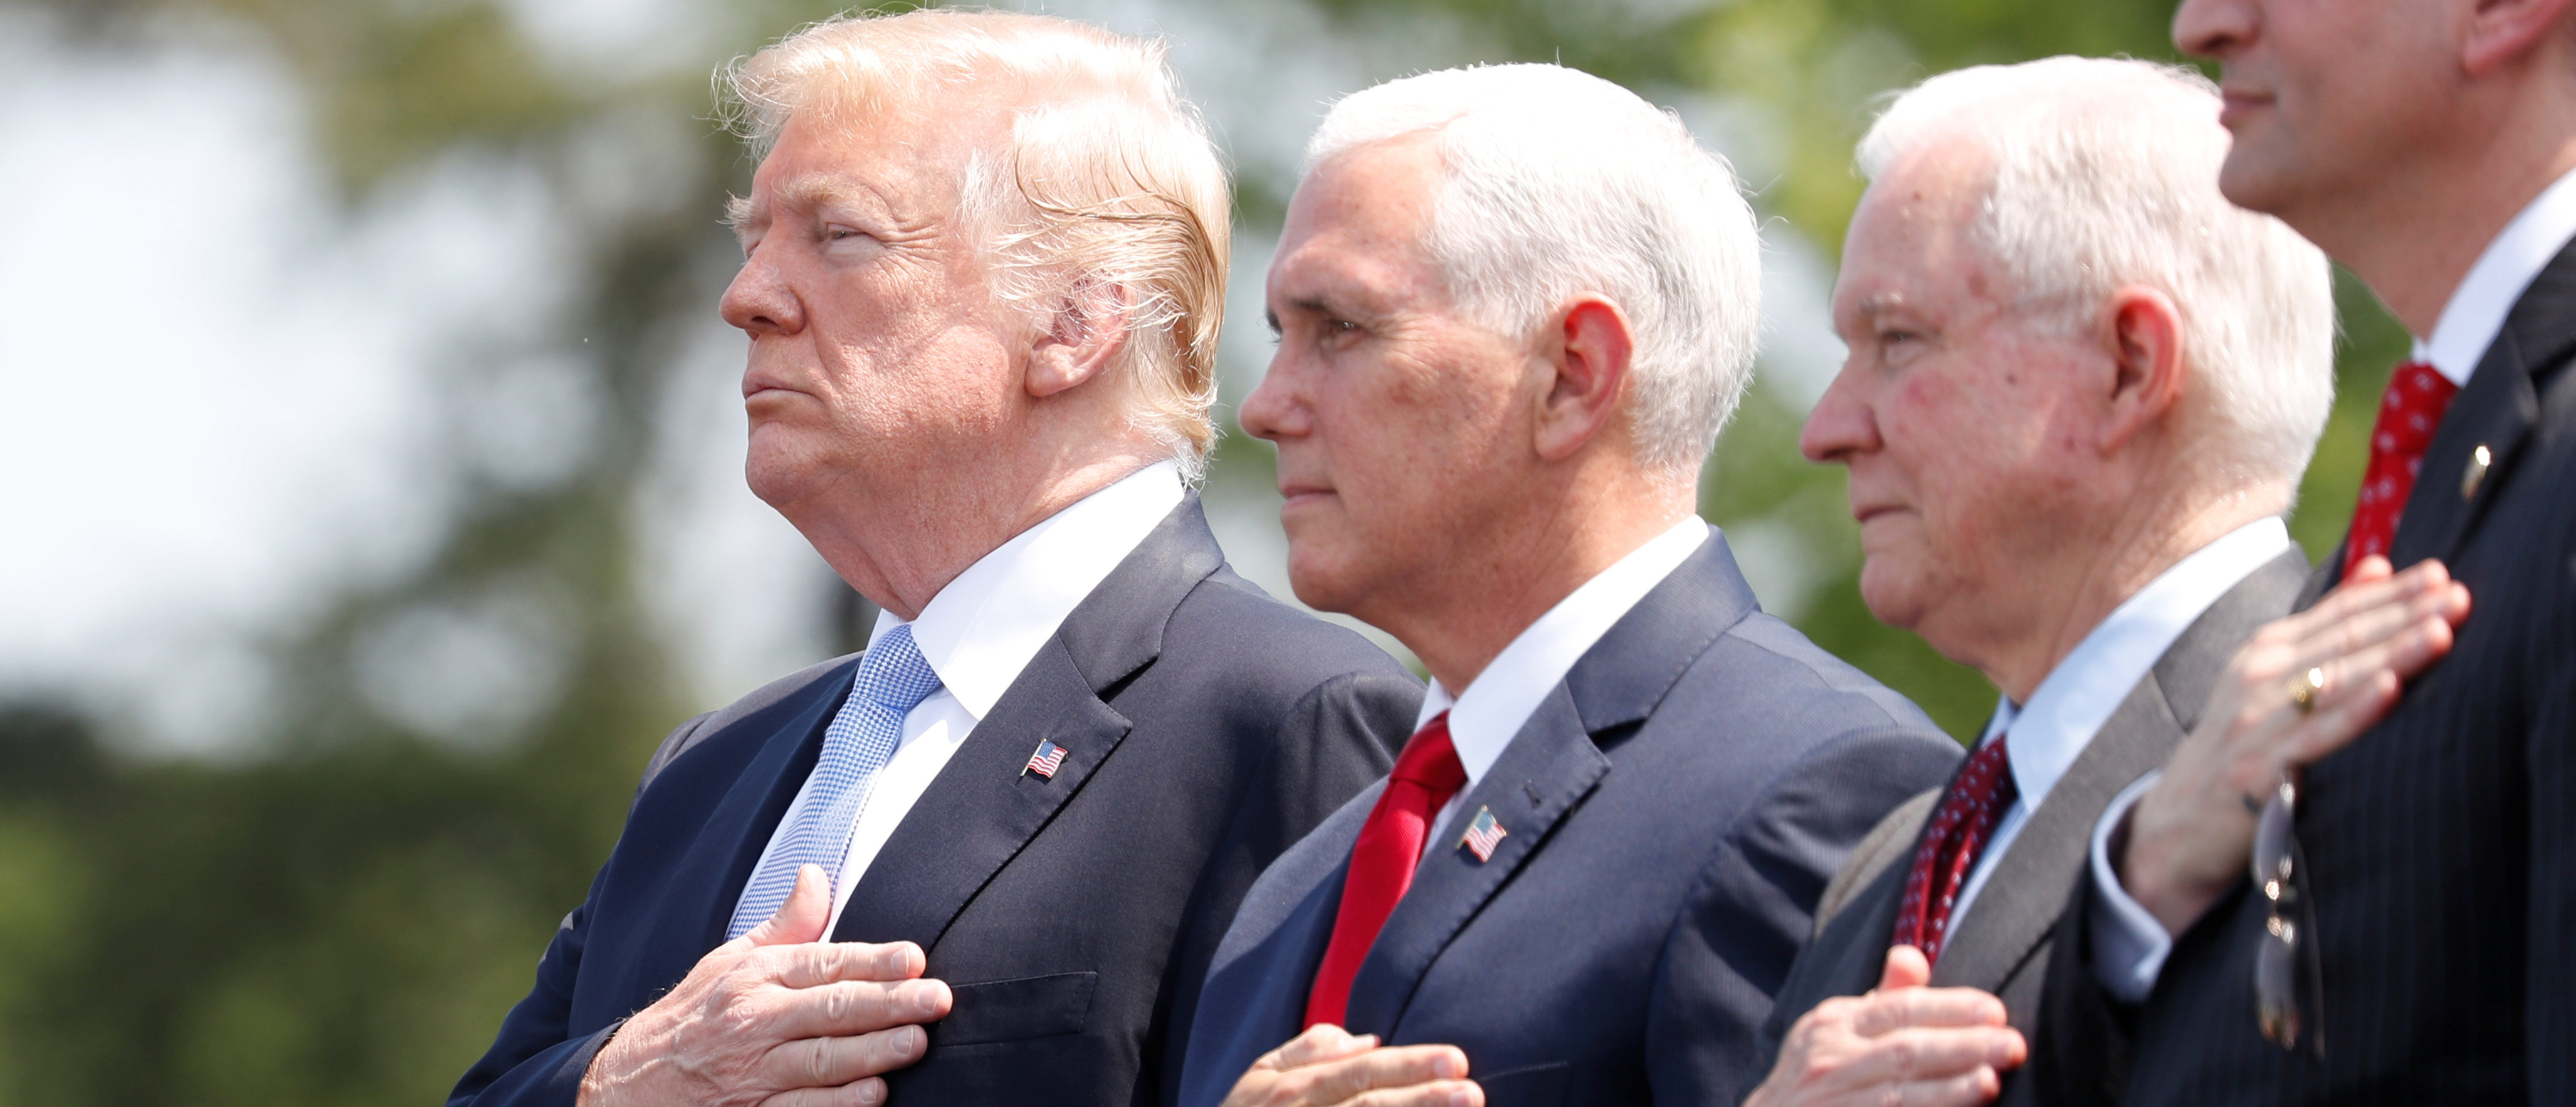 President Donald Trump stands with Vice President Mike Pence and Attorney General Jeff Sessions at the 37th Annual National Peace Officers' Memorial Service  at the U.S. Capitol in Washington, May 15, 2018. REUTERS/Kevin Lamarque